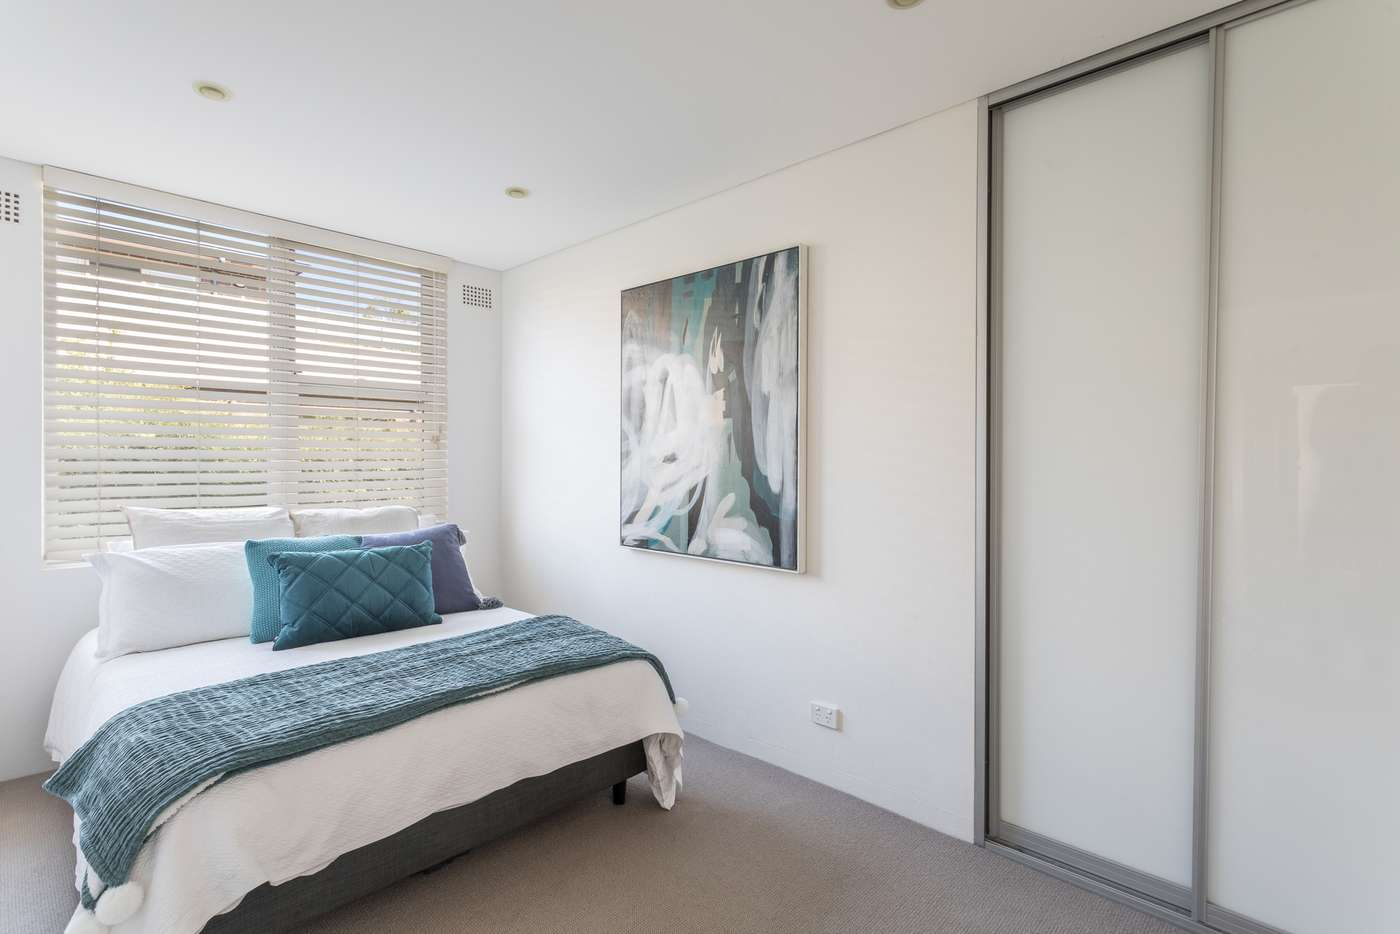 Fifth view of Homely apartment listing, 3/21 Harrison Street, Cremorne NSW 2090